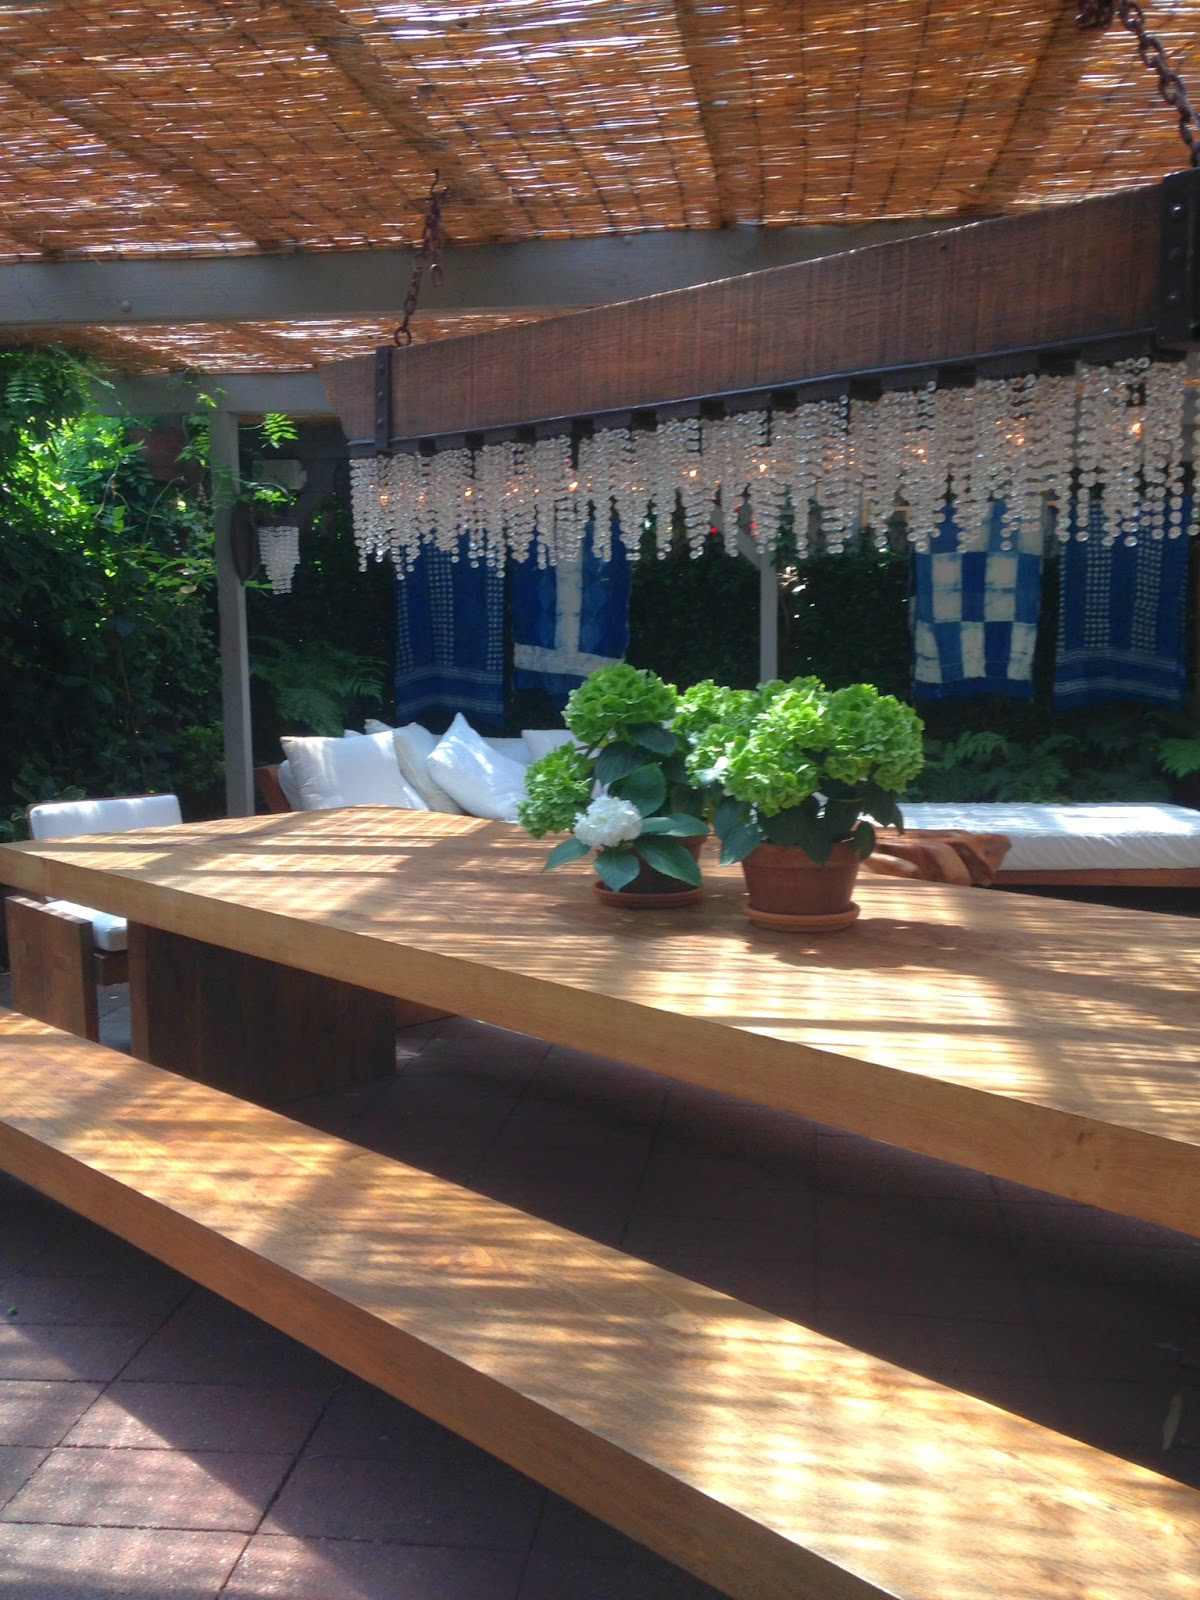 Sag Harbor House By P T Interiors With Images: Under The Pergola Post VI -- Beautiful Design Ideas From Urban Zen In Sag Harbor